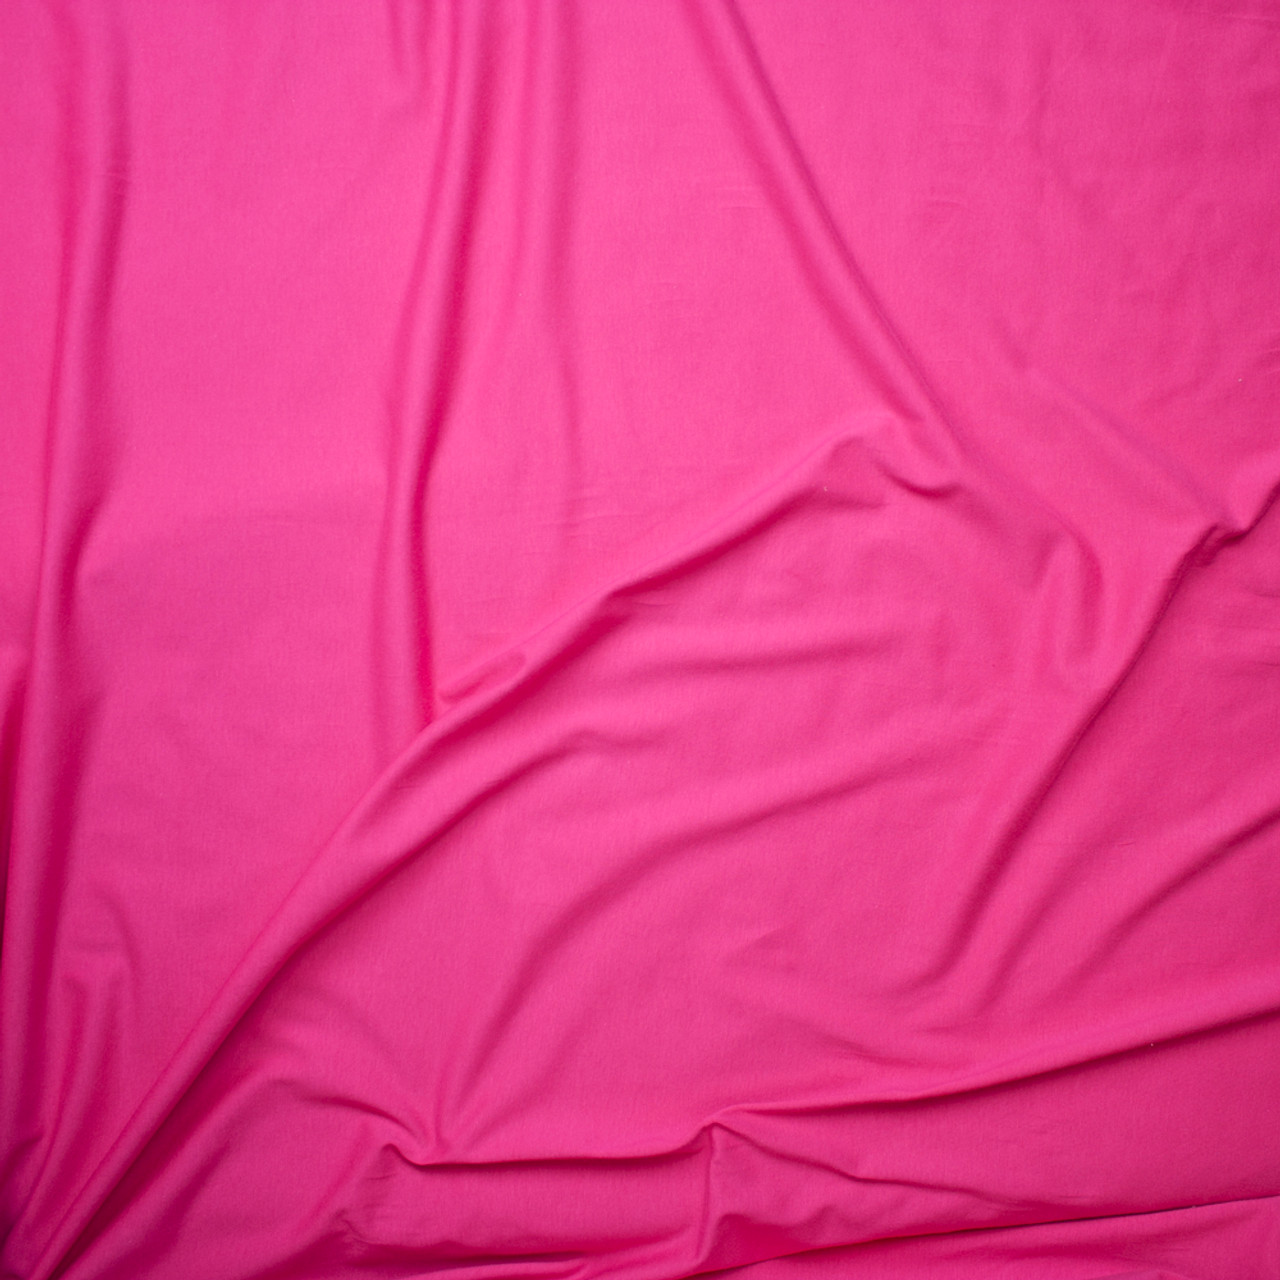 5477e74be2a ... Hot Pink Light Midweight Stretch Cotton Jersey Knit Fabric By The Yard  - Wide shot